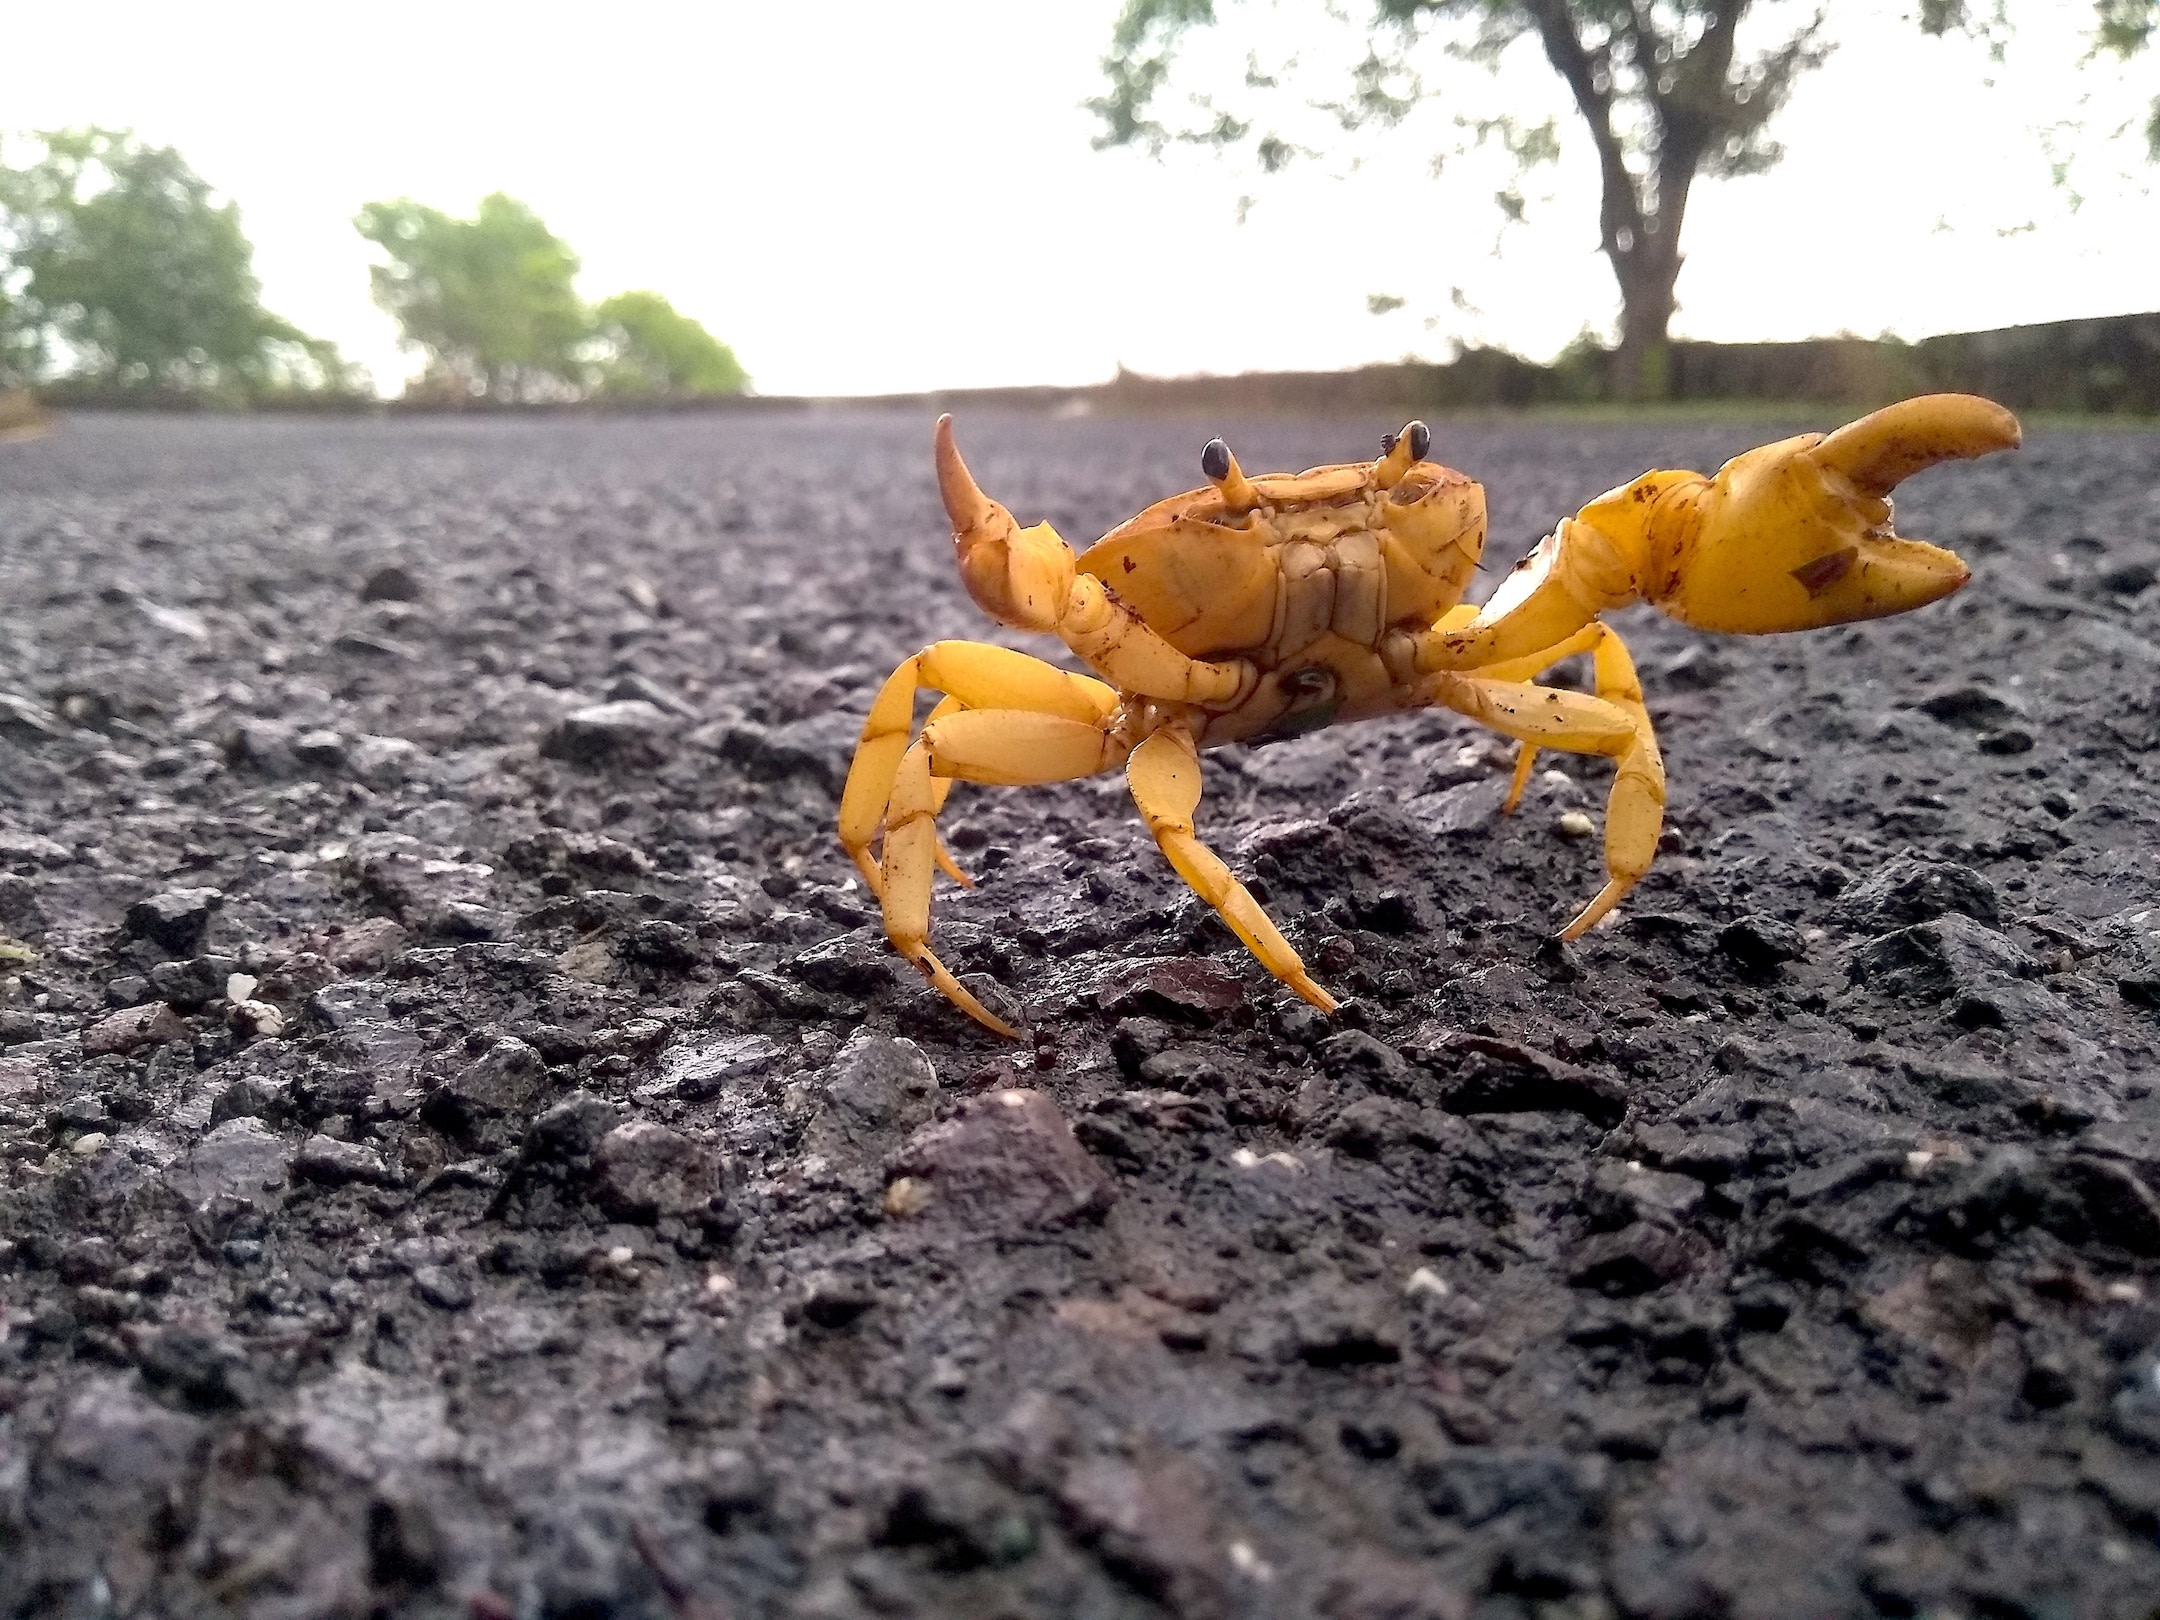 In wet weather, freshwater crabs can often be seen on the road that winds up Kharghar Hills, finding refuge and in pools created alongside the road as the monsoon begins to set in. Photo: Anirudh Nair